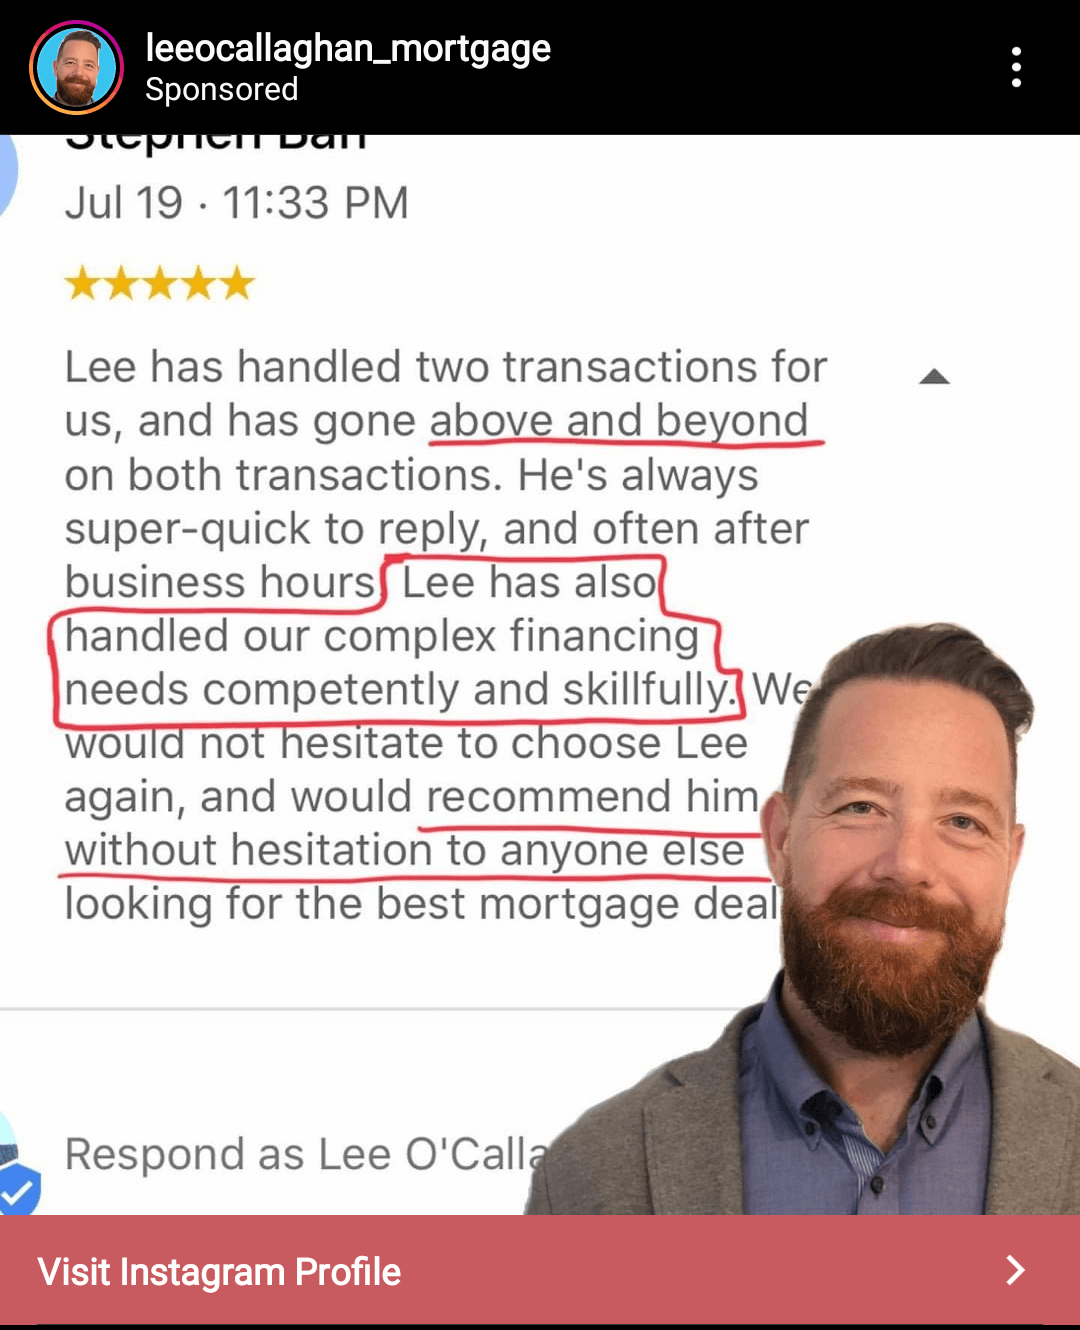 Iscreen shot of an nstagram ad that uses a review left for  Lee O'Callaghan Mortgage